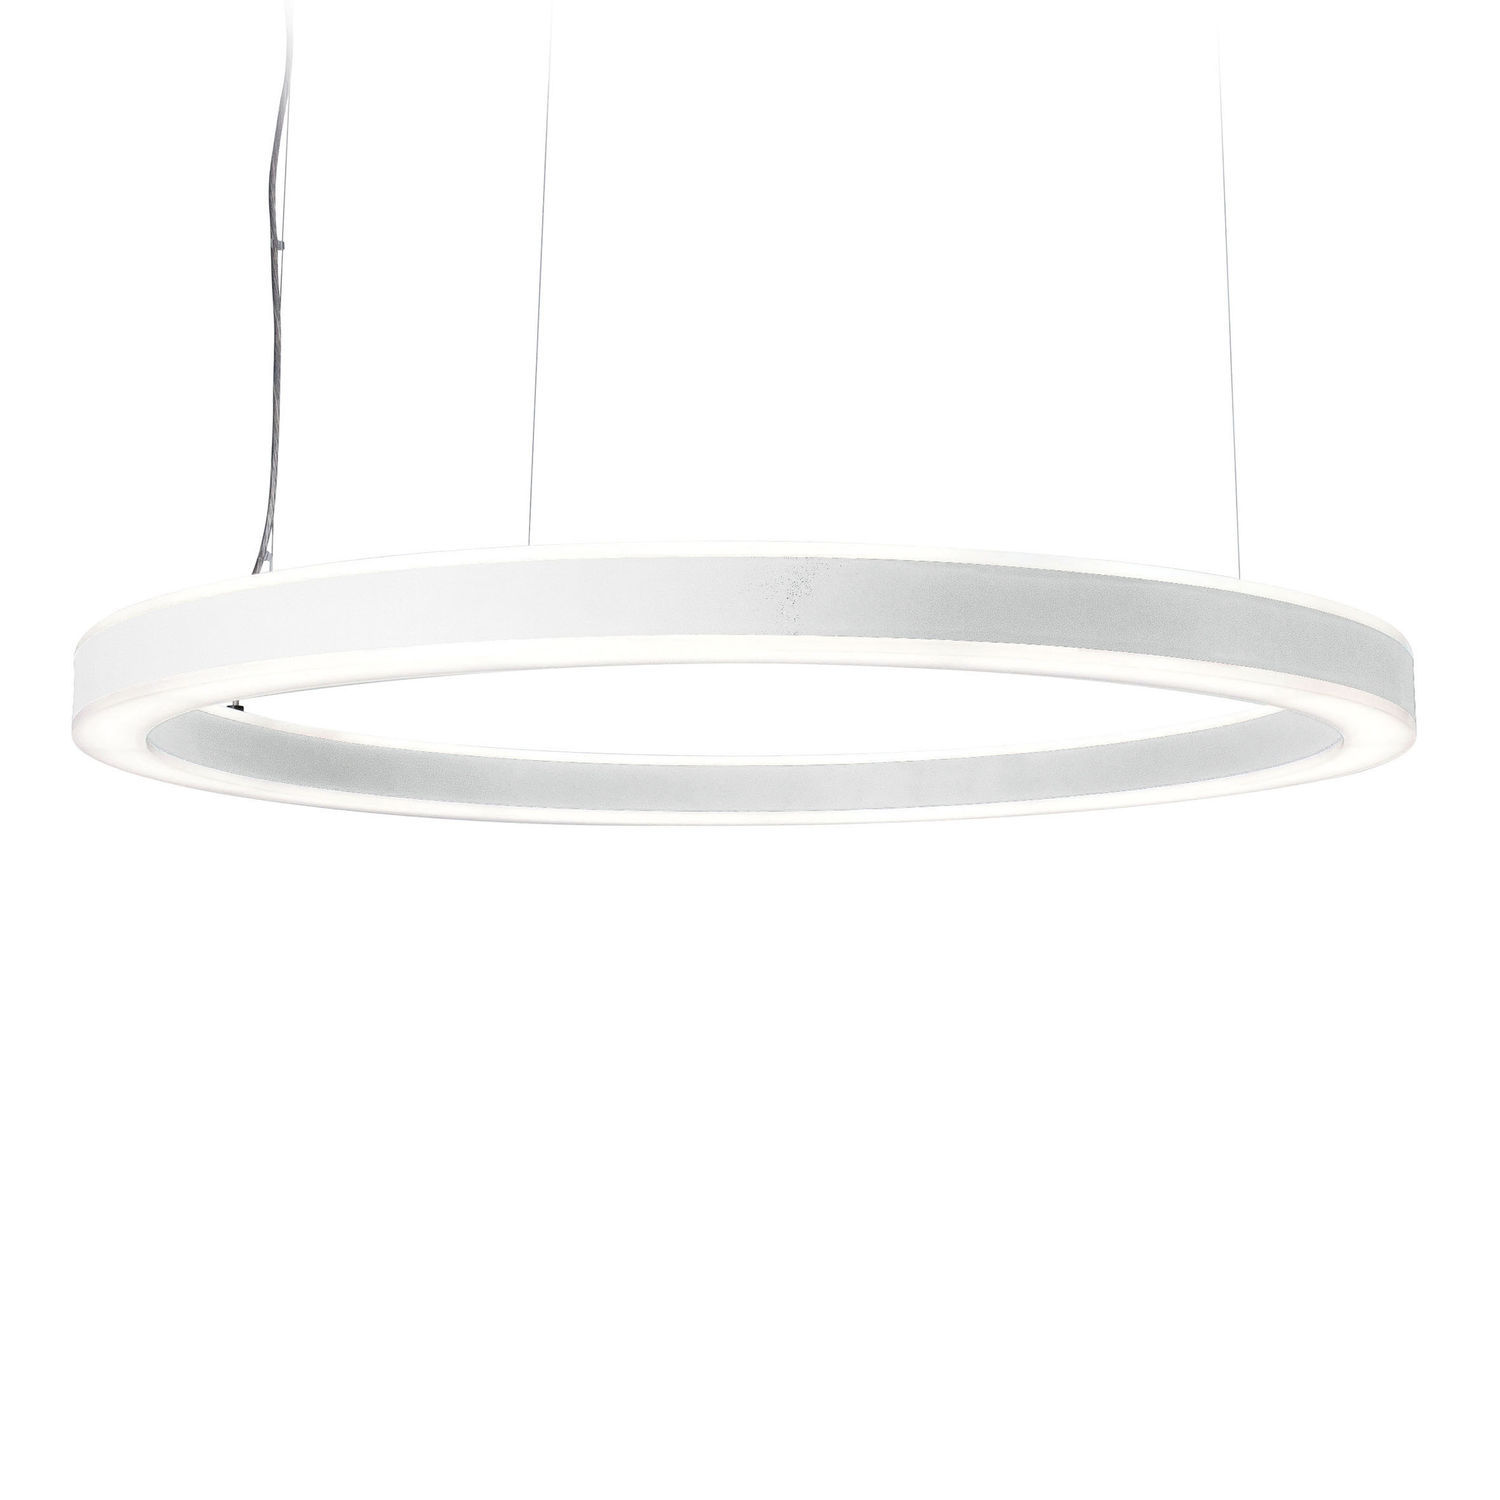 Hanging Light Fixture LED Round Aluminum HALO Planlicht - Halo light fixtures